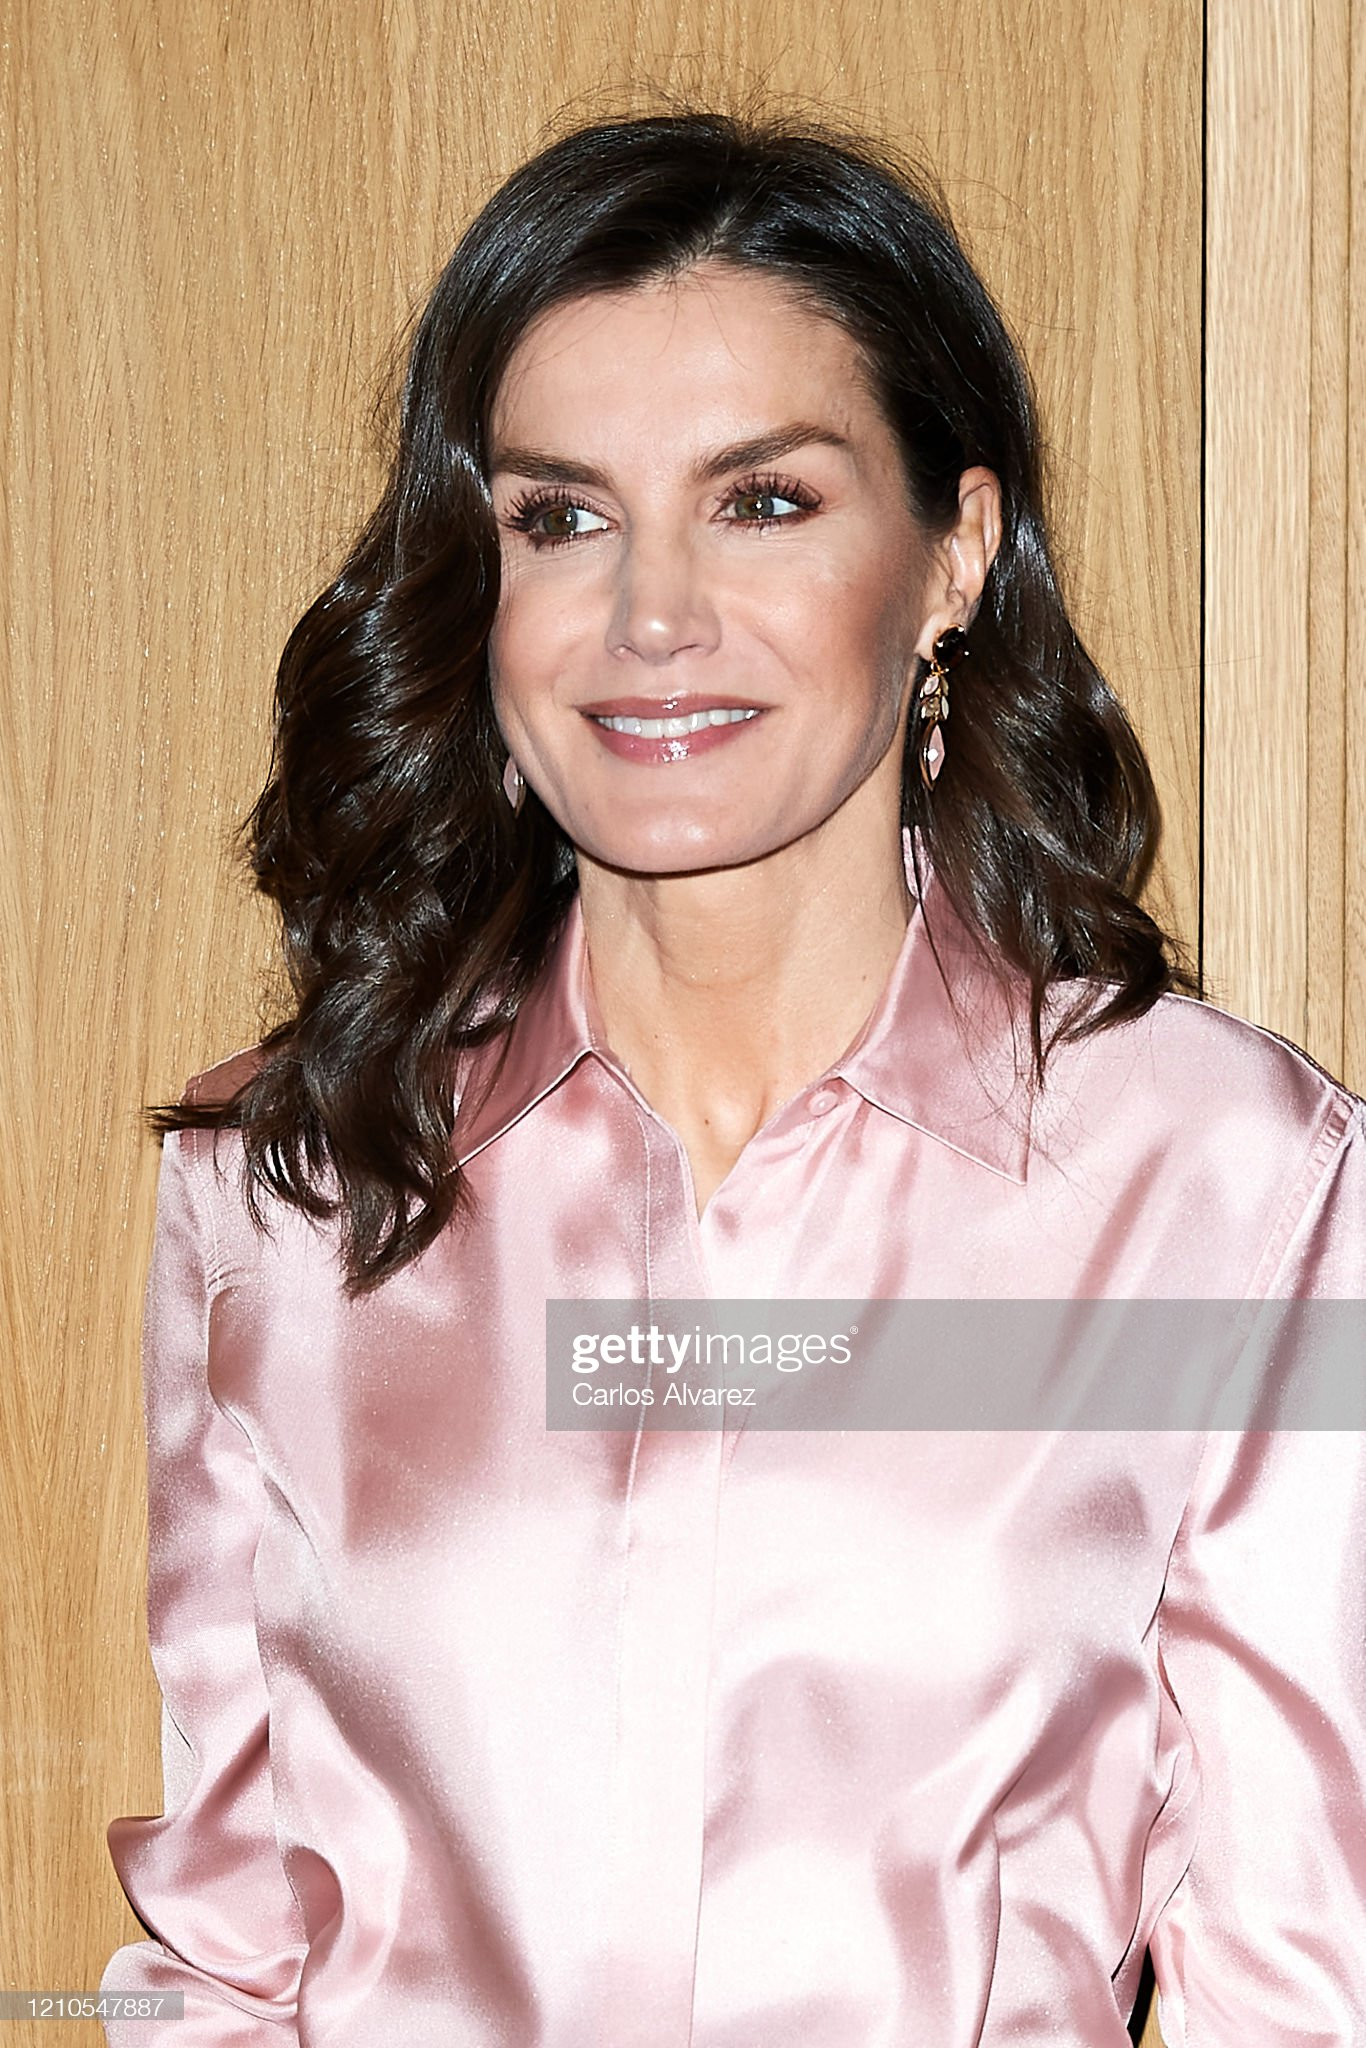 https://media.gettyimages.com/photos/queen-letizia-of-spain-attends-the-rare-diseases-world-day-event-at-picture-id1210547887?s=2048x2048